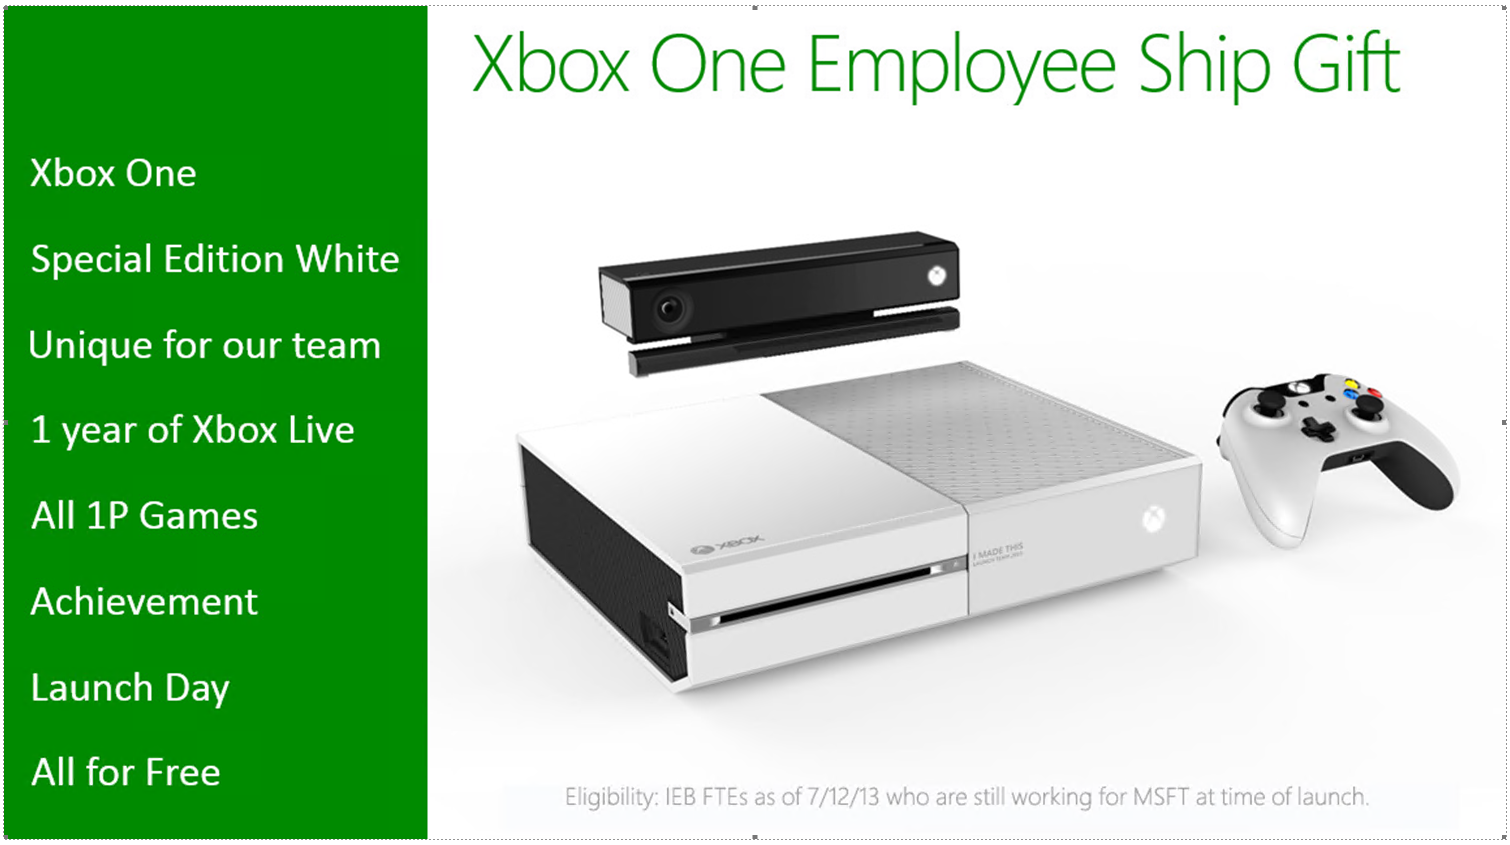 XboxOneWhite Microsoft rumored to be offering some employees free white Xbox Ones